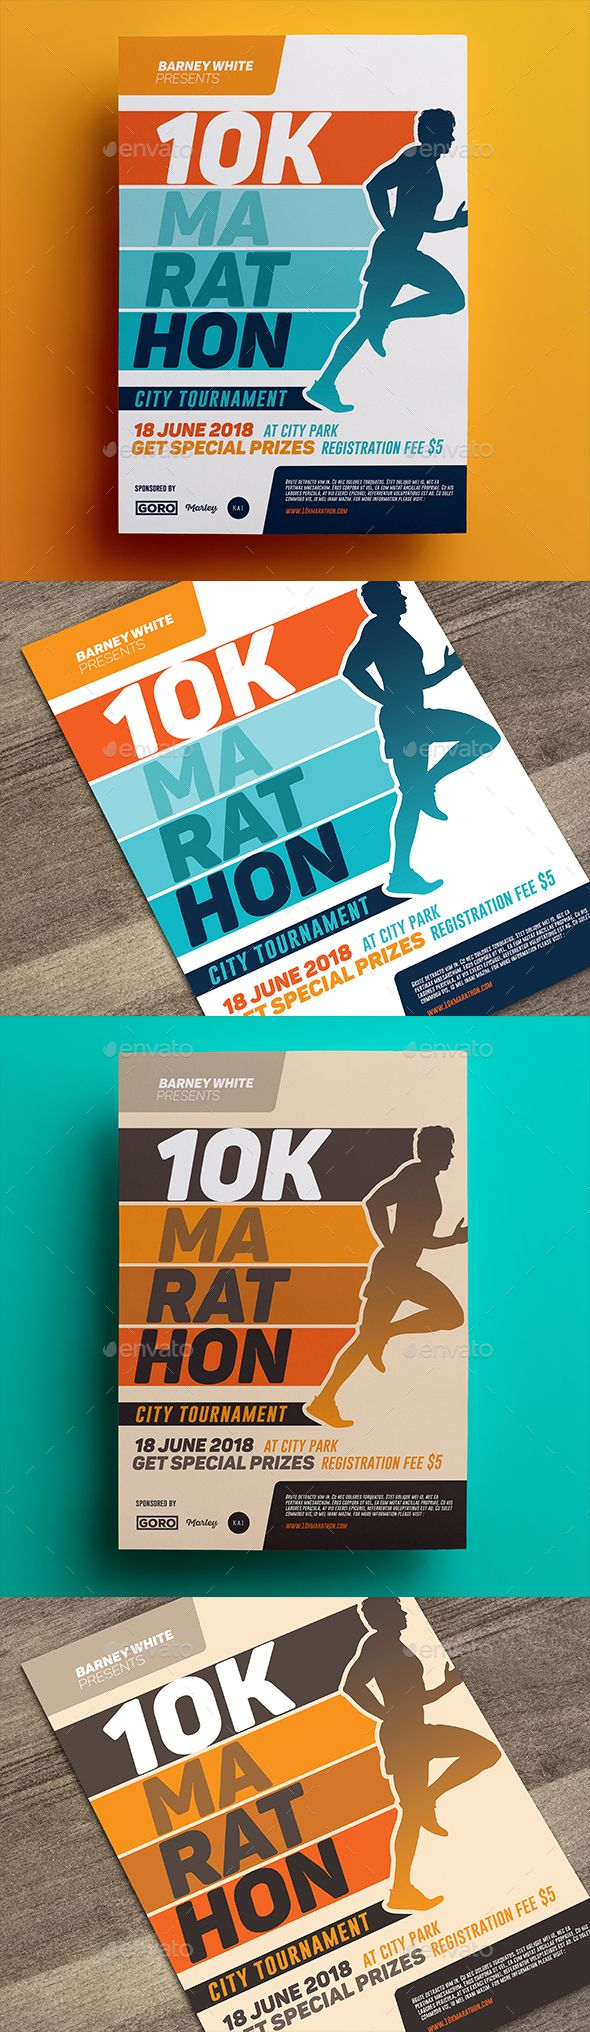 Marathon Flyer 03 by aarleykaiven Marathon Flyer, can be used for your company event, charity event, etc File Features : 2 PSD Designs Size A4 (8.2x11.6 In)   0